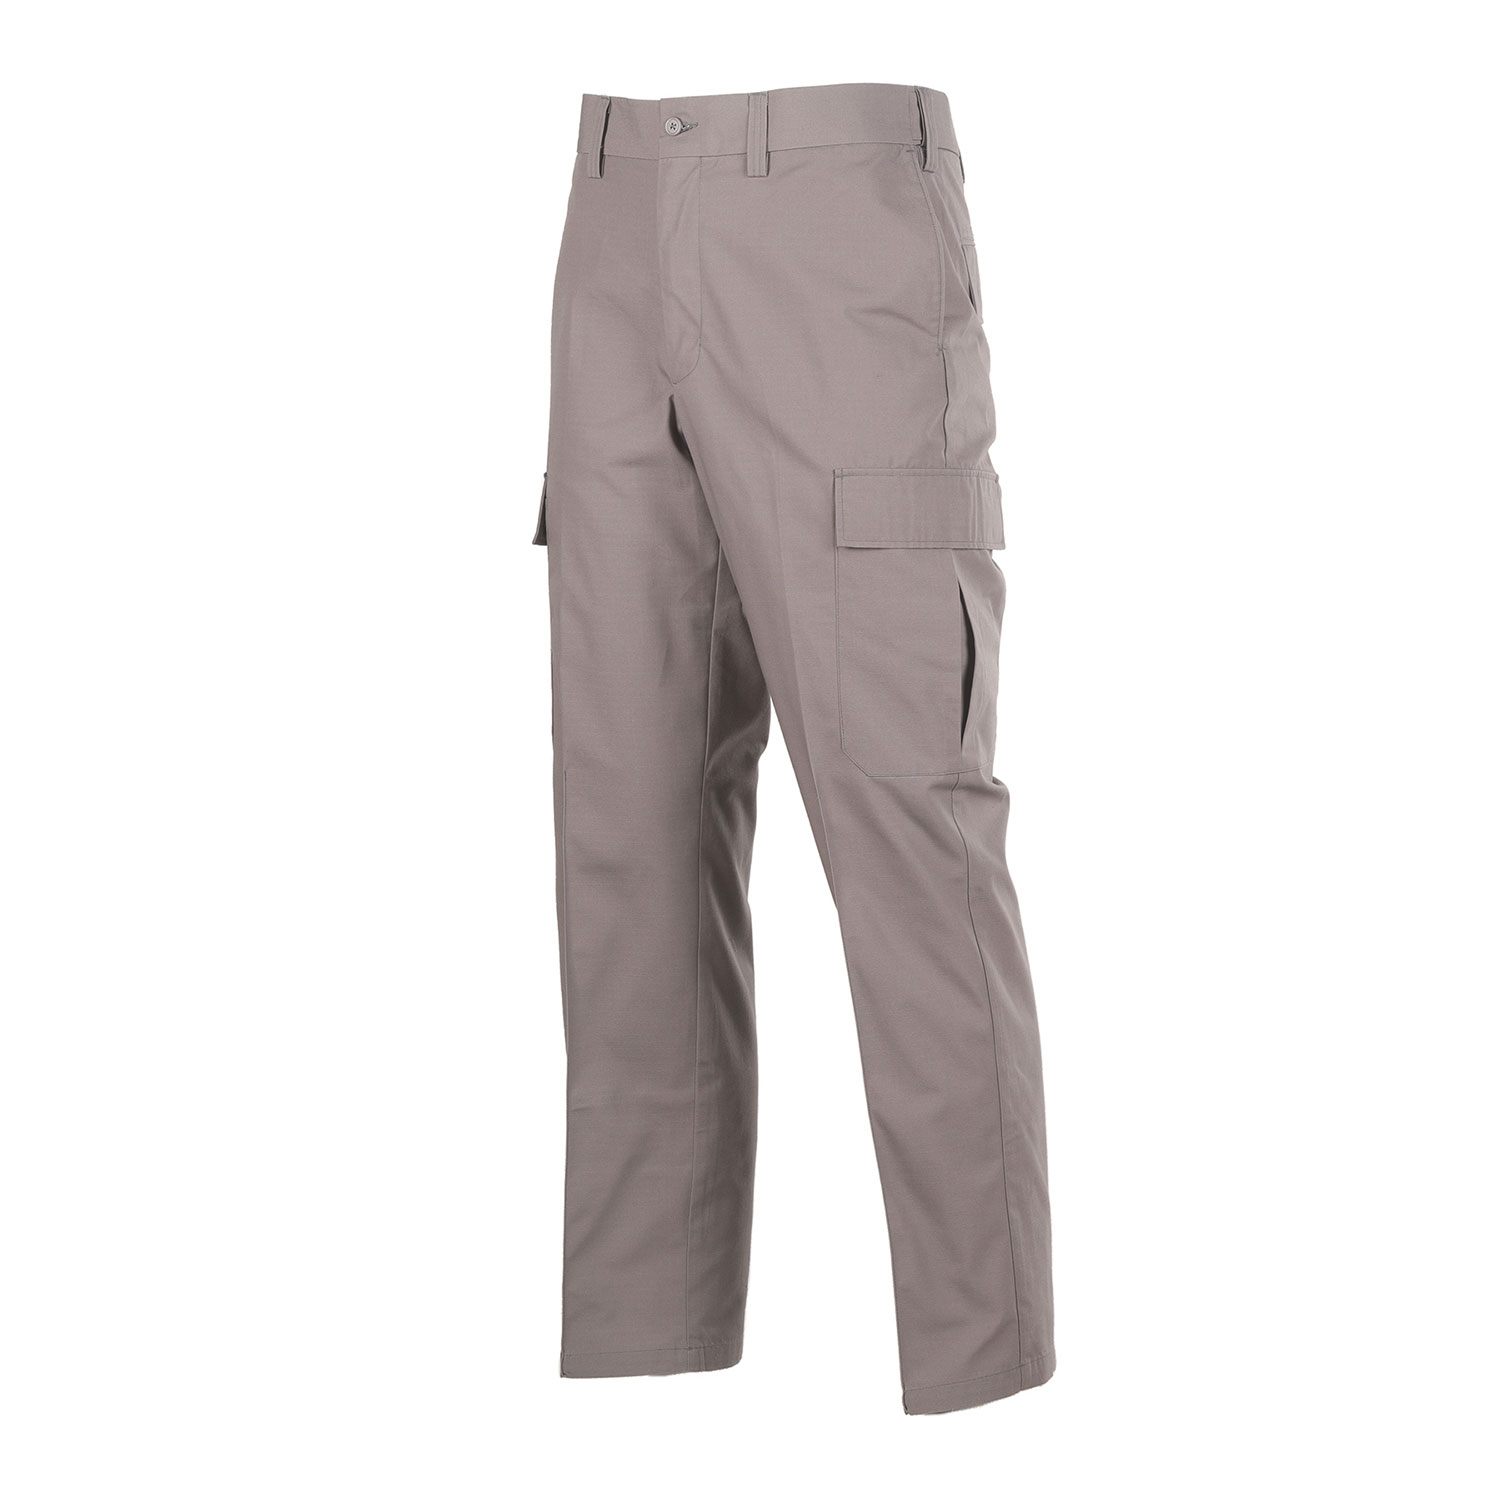 Galls FBOP Men's Utility Uniform Trousers (Nickel Gray)